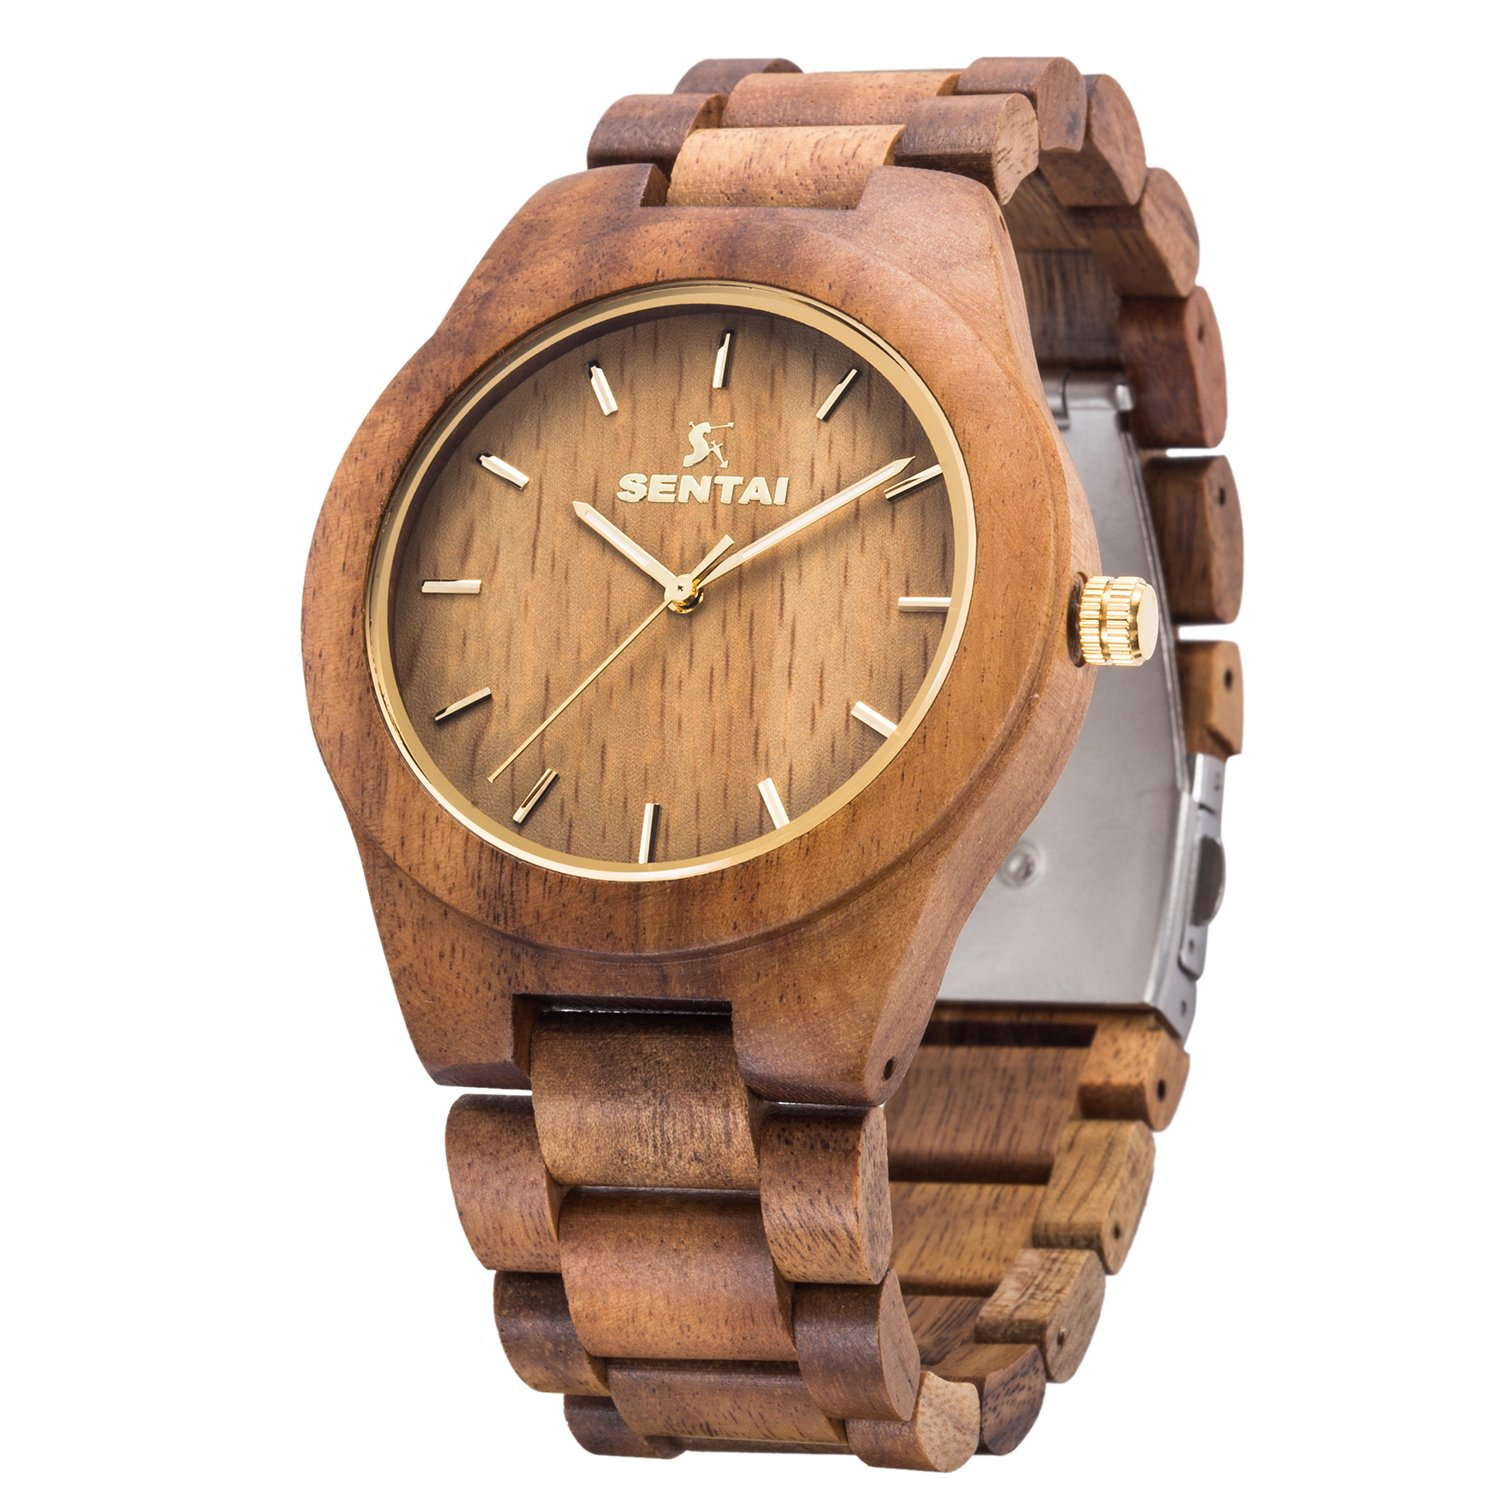 quartz watches wooden truwood mahogany products pic angle with red architect watch true wood